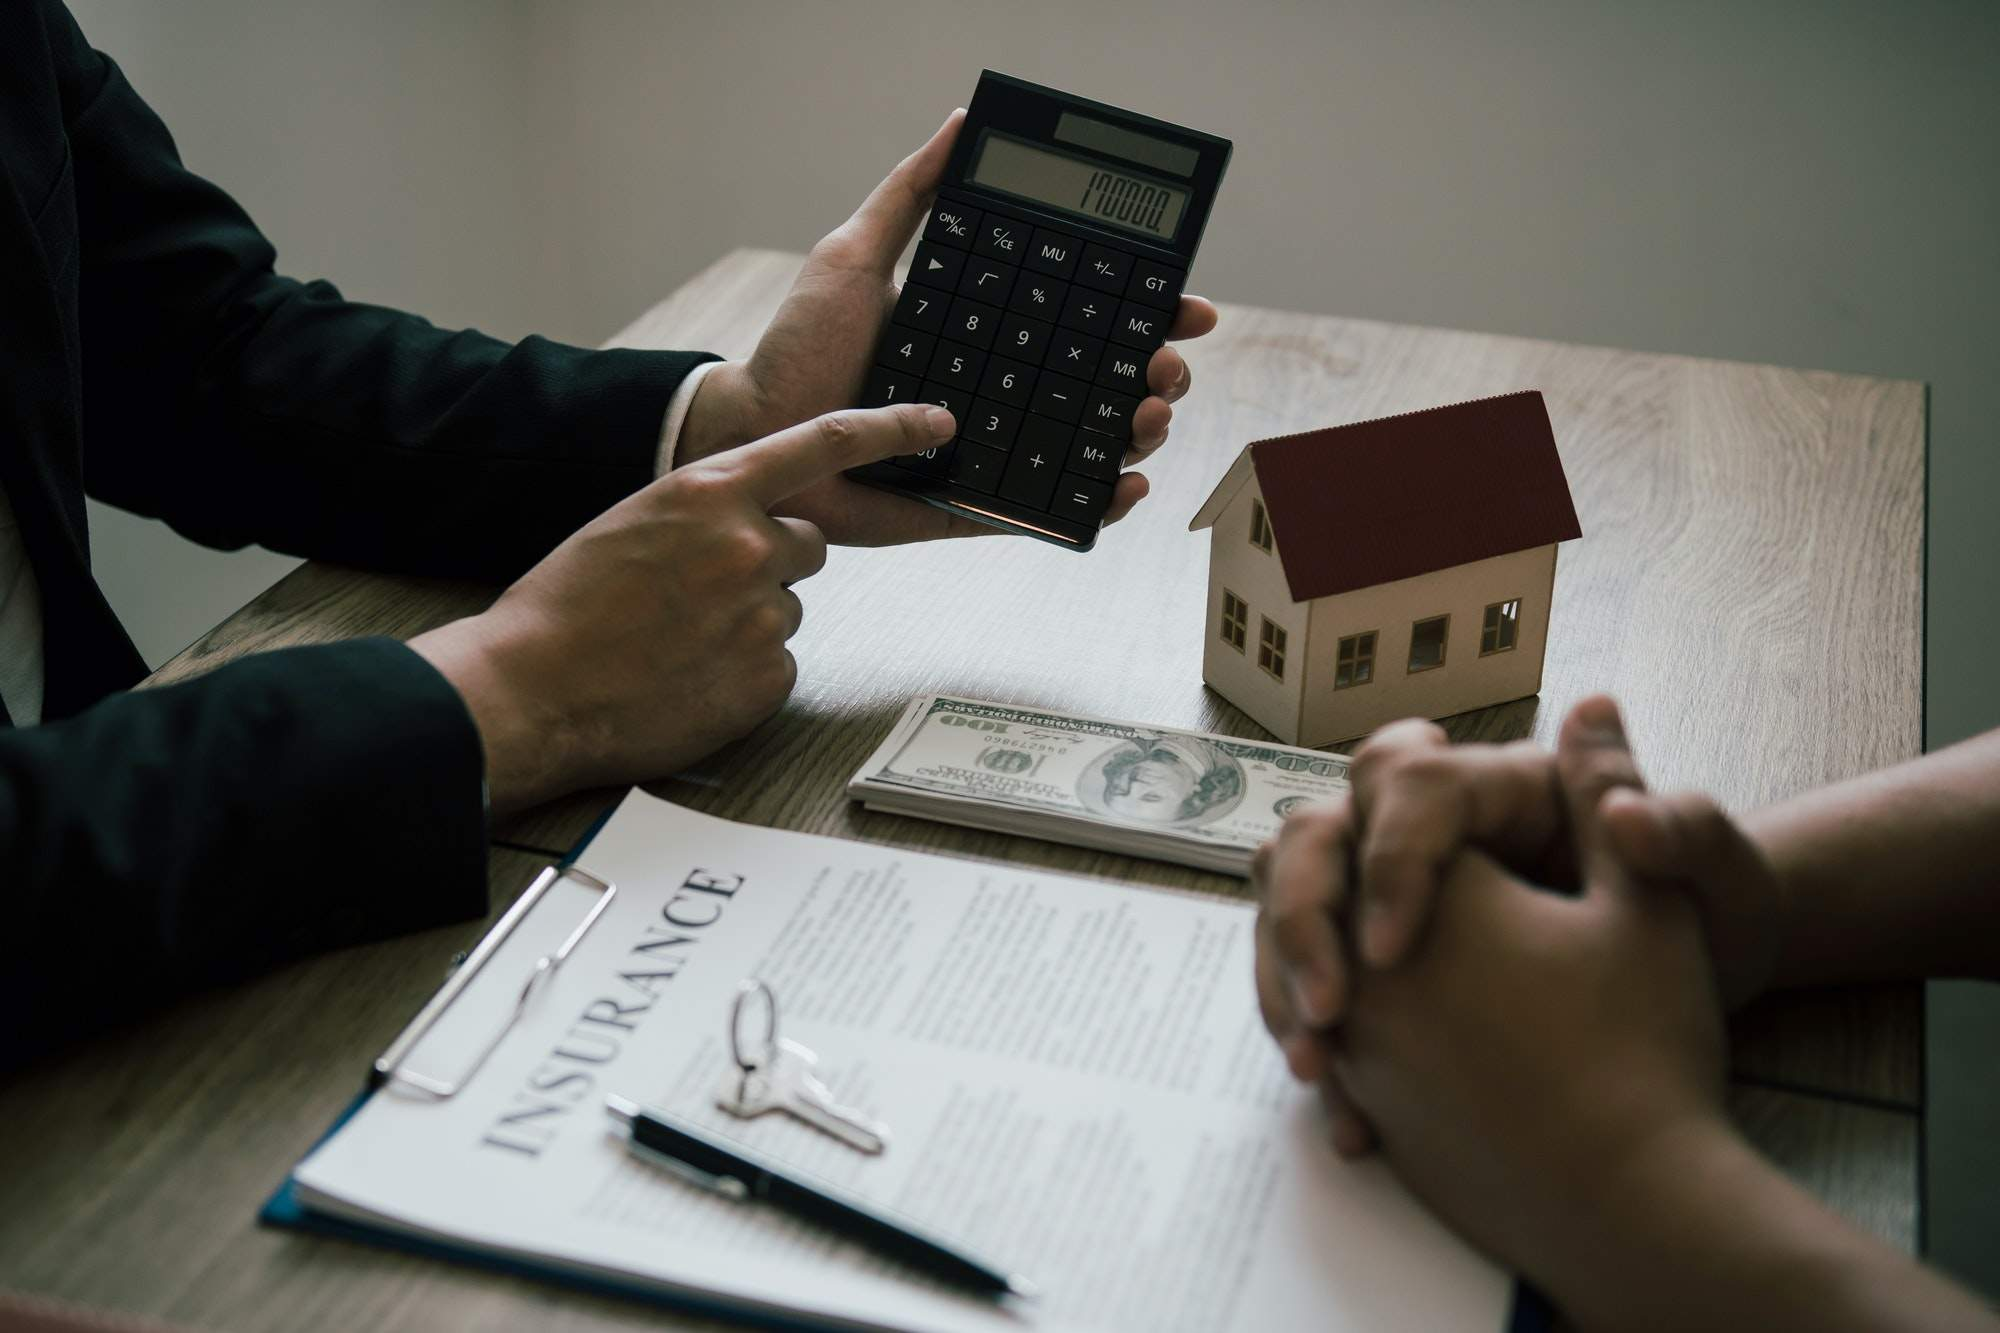 Agents are calculating the loan payment rate or the amount of insurance premiums for customers